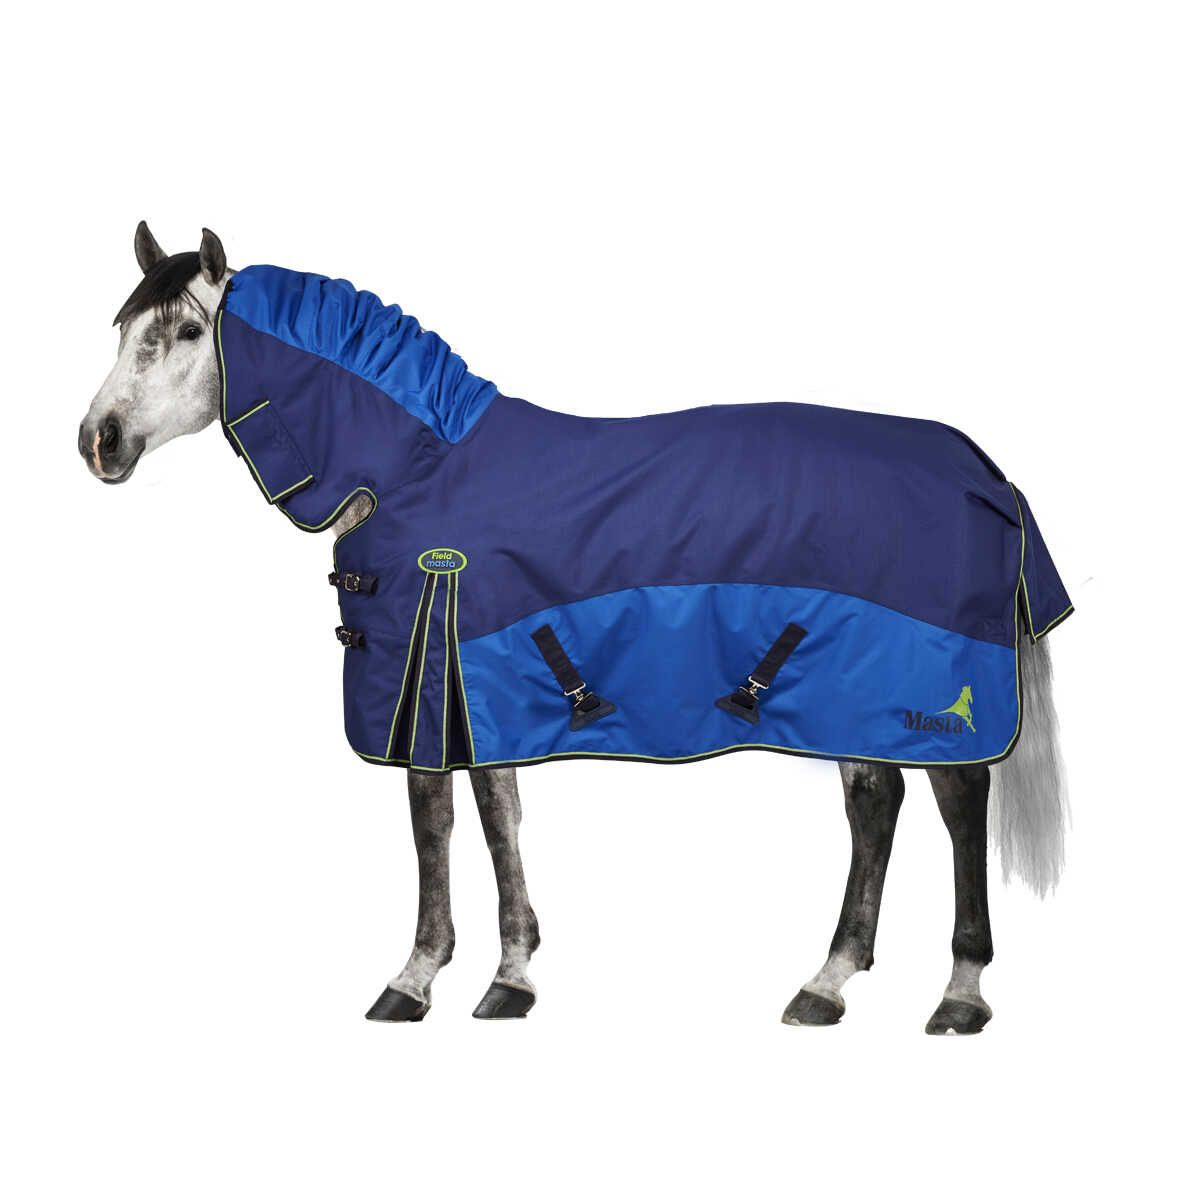 Field Masta Fixed Neck 200g Turnout Medium Weight Rug